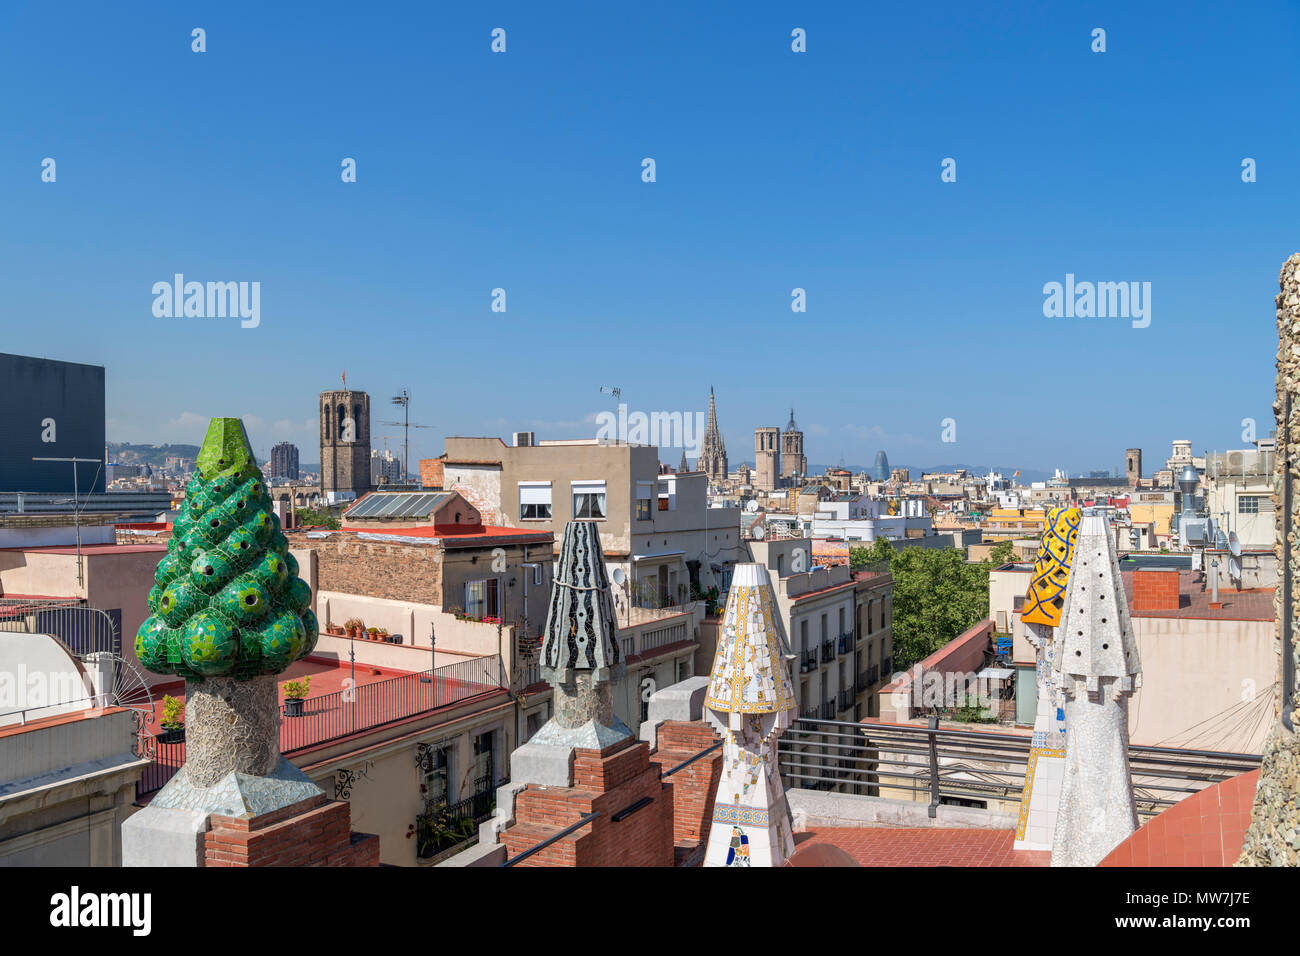 View over the city from the roof of the Gaudi designed Palau Guell, El Raval, Barcelona, Spain - Stock Image